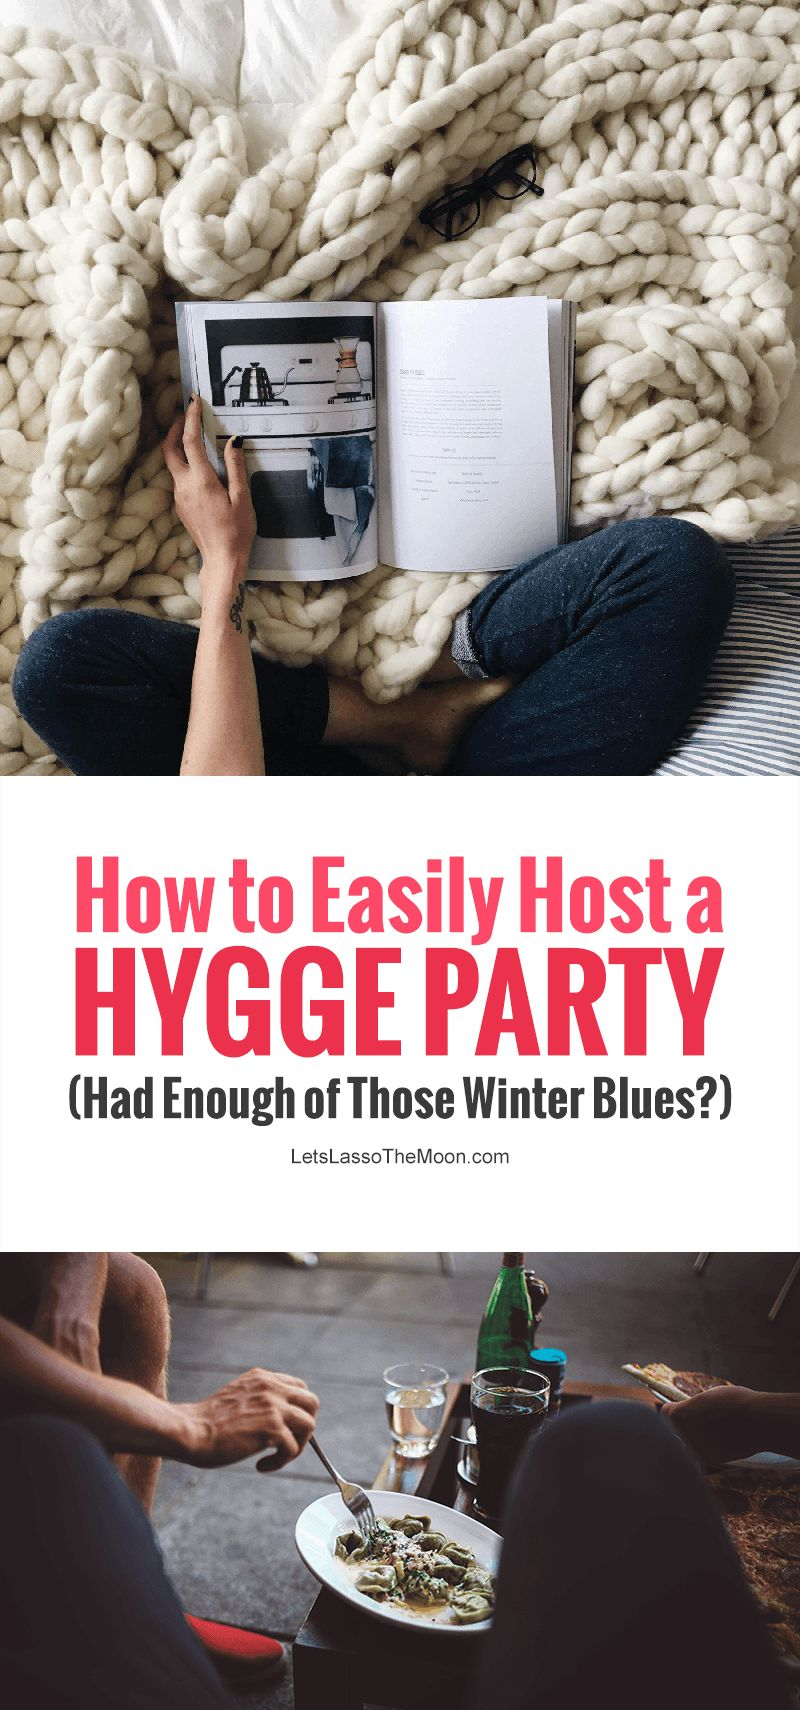 Had Enough of Winter Blues? How to Easily Host a Hygge Party